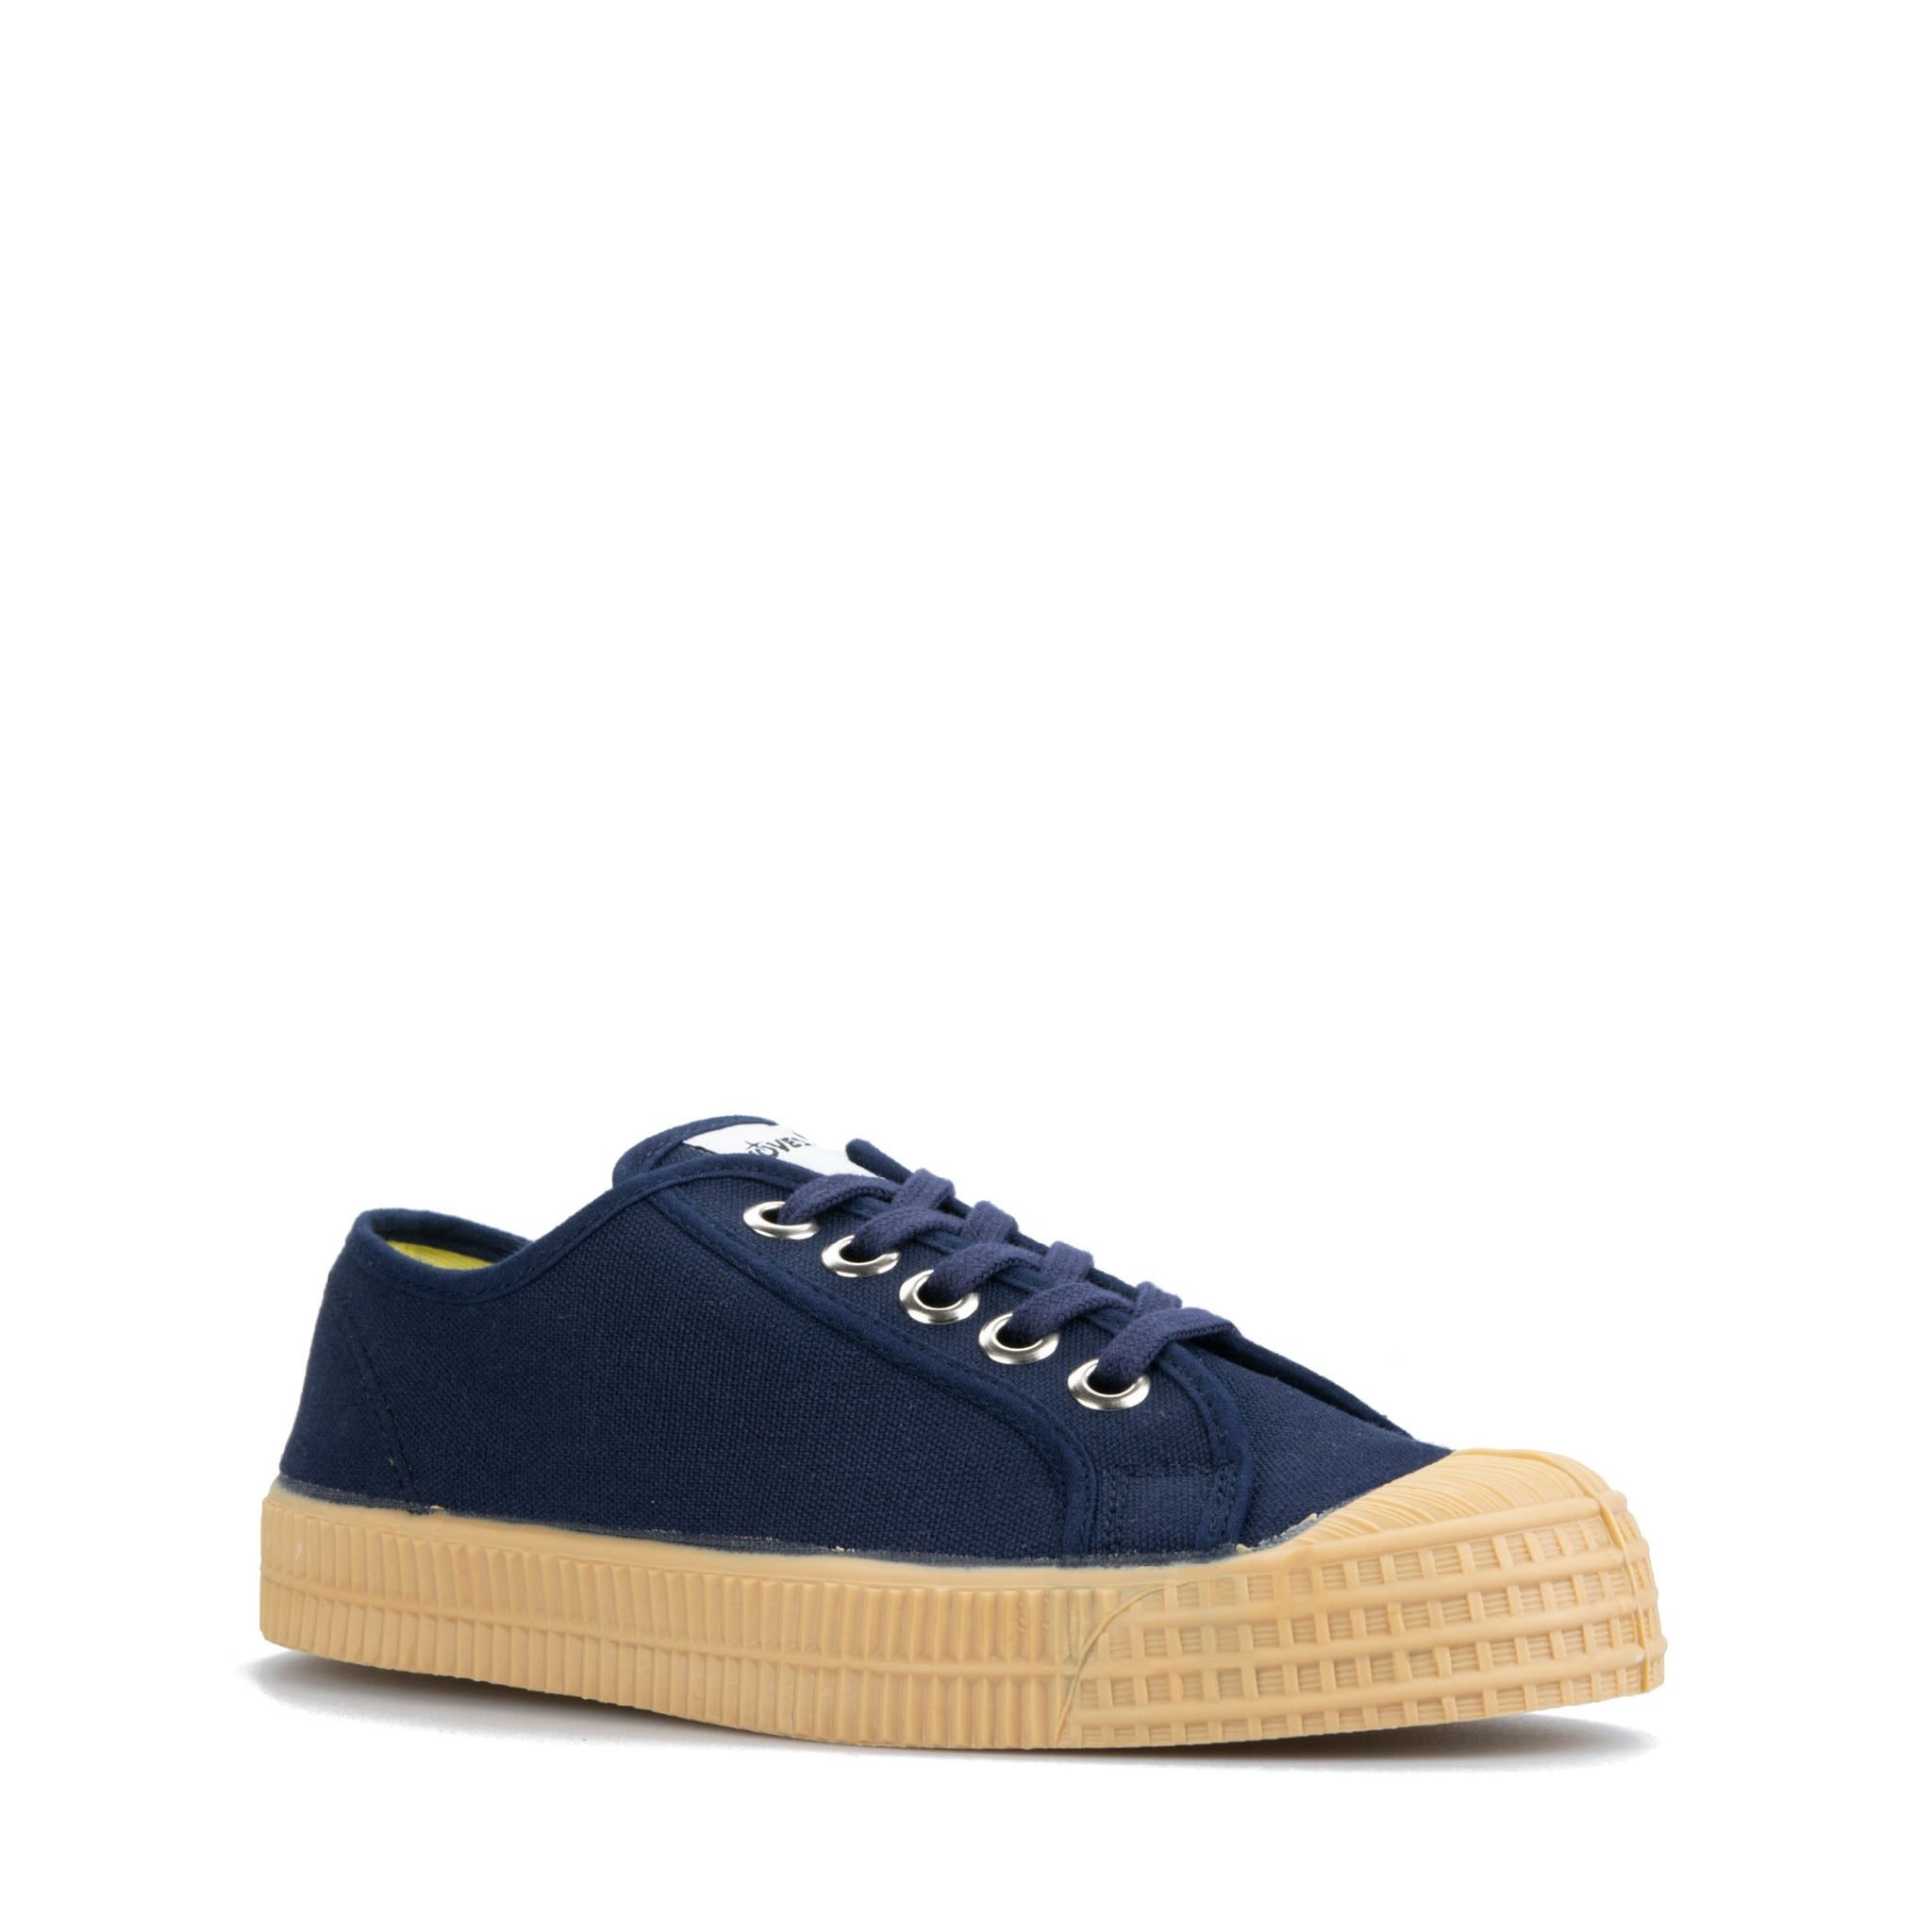 Star Master 27 Sneakers in Navy